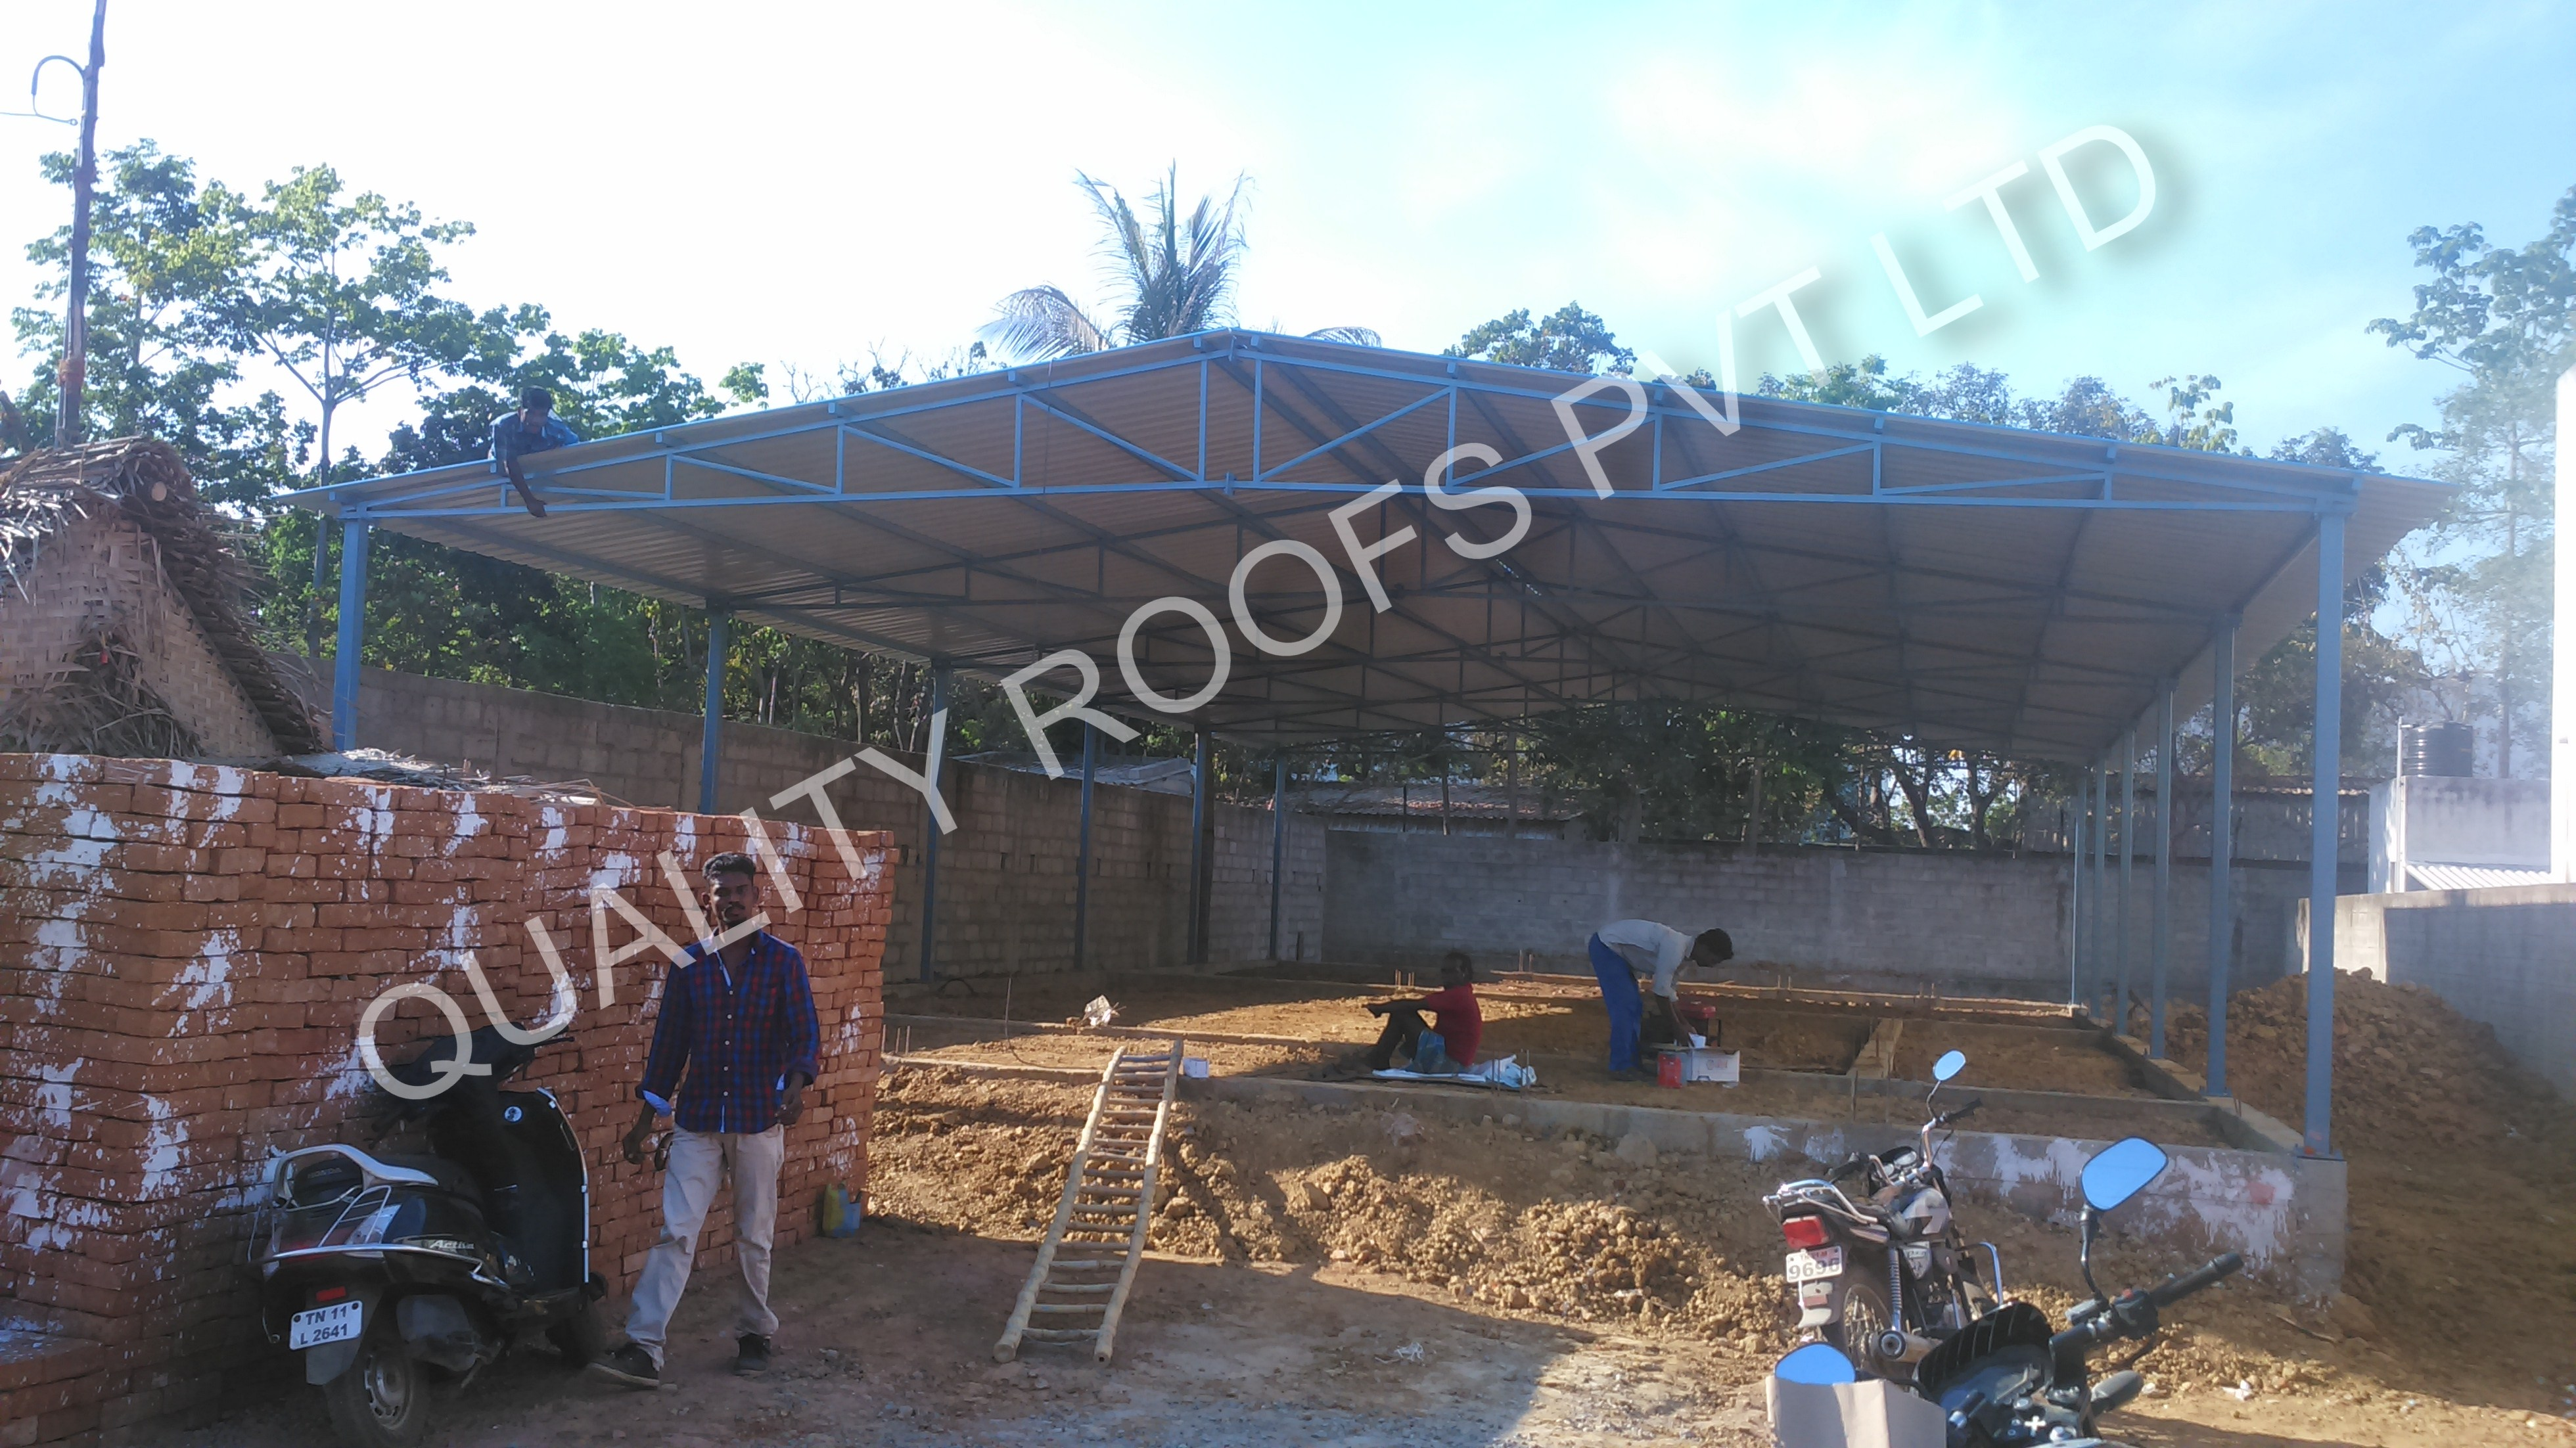 Quality Roofs Pvt Ltd, Roofing Fabricators In Chennai,Roofing Contractors In Chennai,Terrace Roofing  Contractors In Chennai,Shed Fabricators In Chennai,Best Roofing Fabricators In Chennai